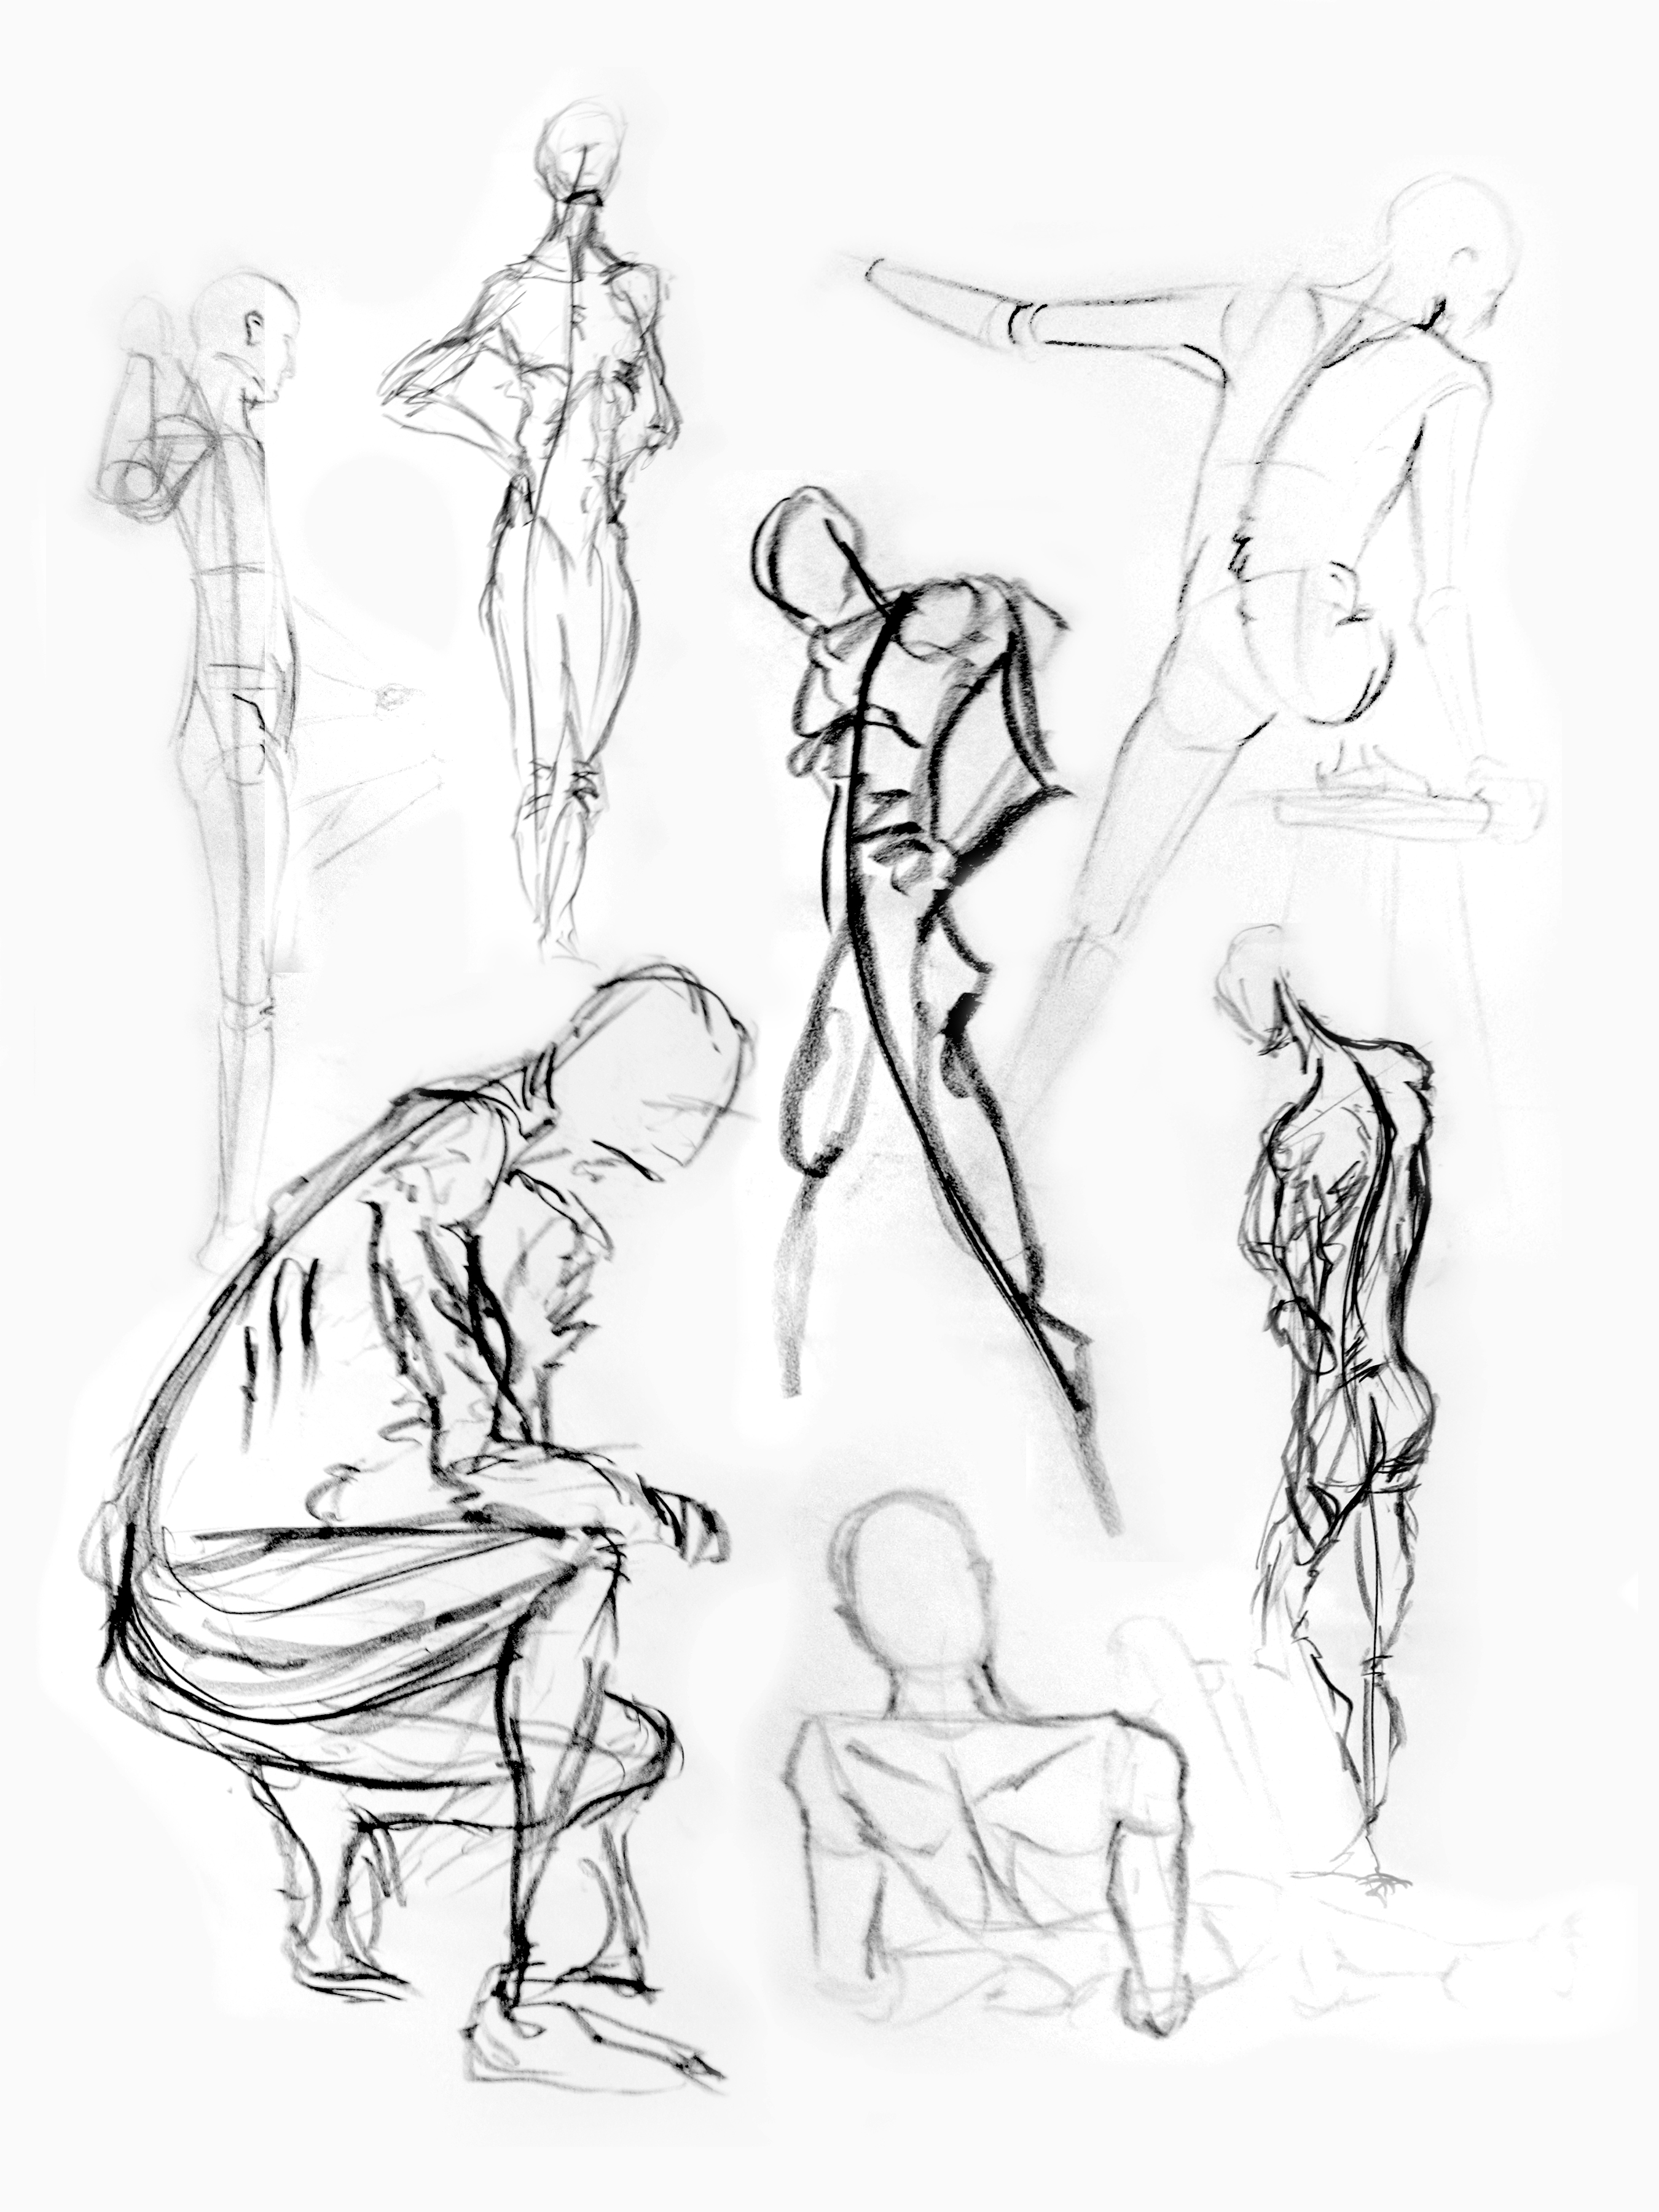 http://www.ecuad.ca/sites/www.ecuad.ca/files/users/1351/work/84986/nisbet_laura_figure_drawing_02.jpg